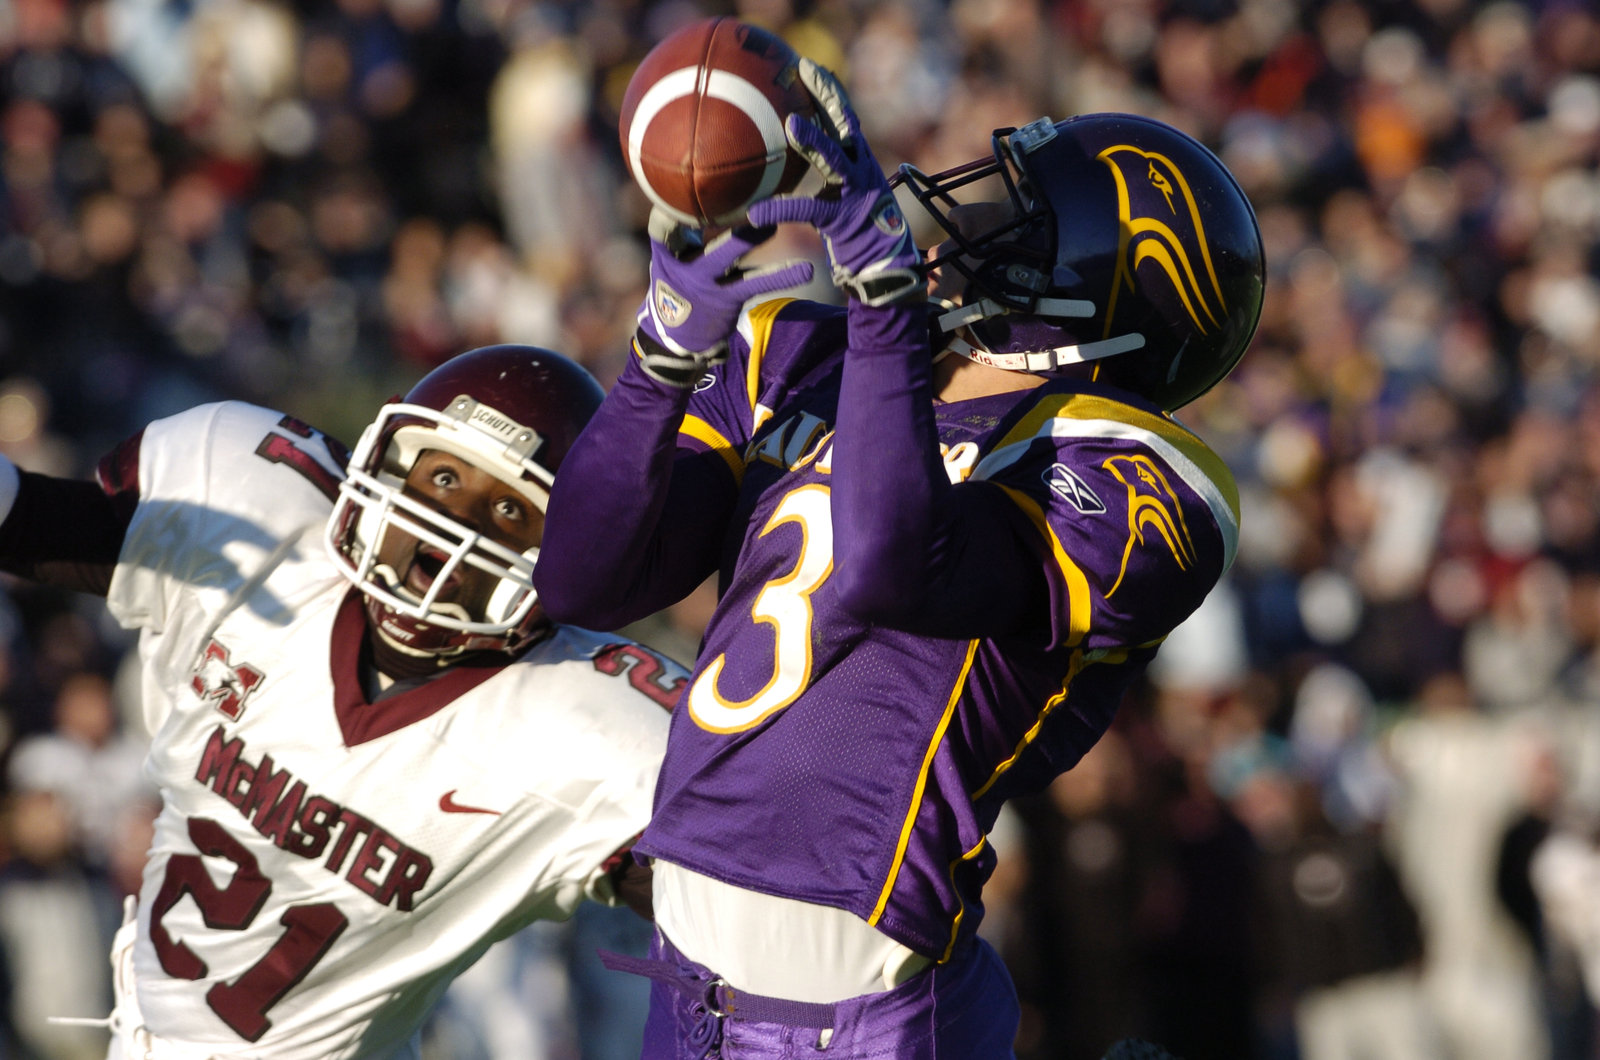 Andrew Agro makes a reception during the 2004 Yates Cup